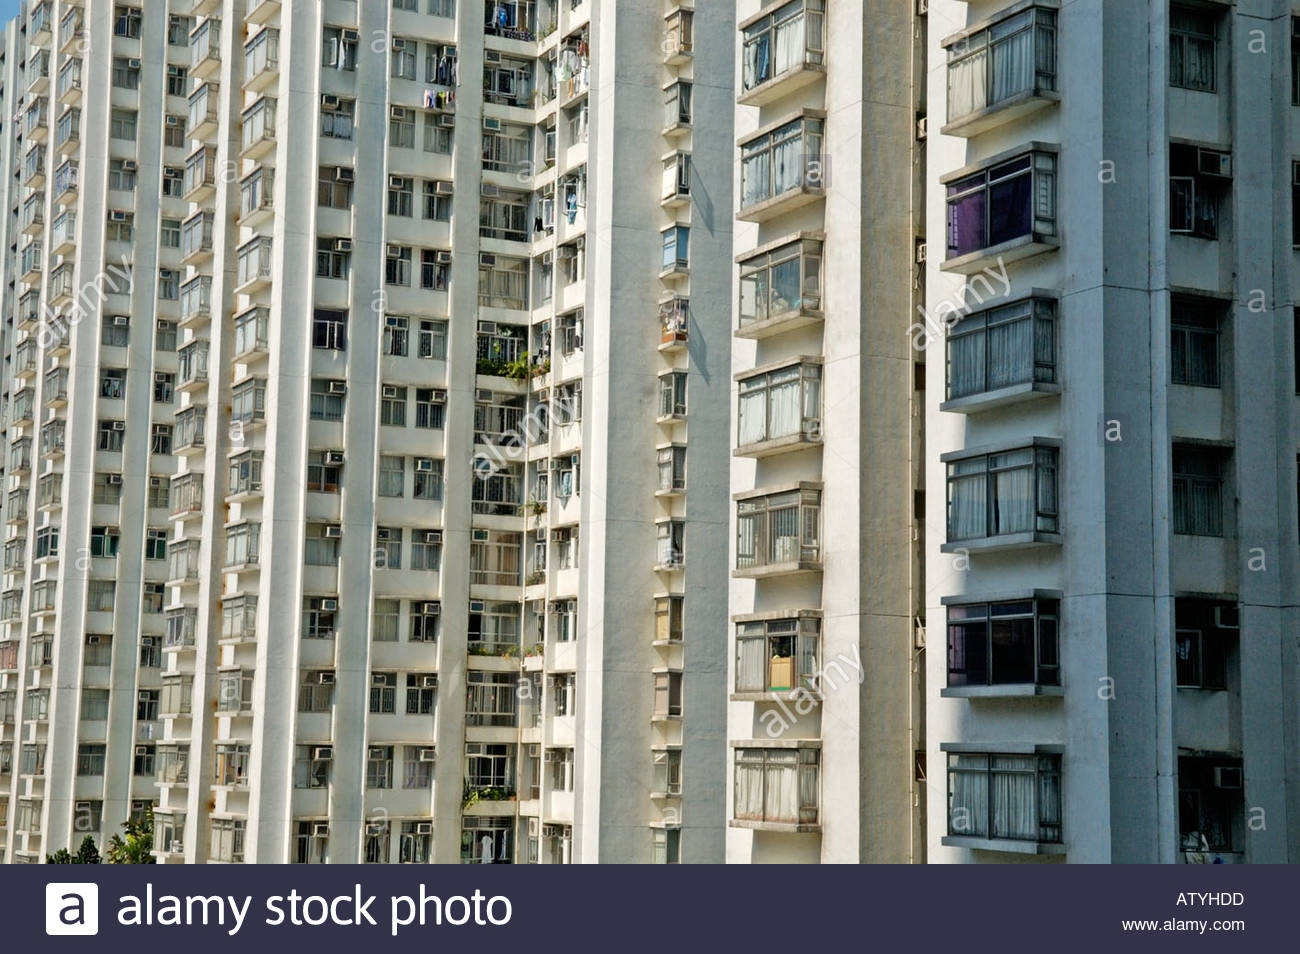 Typical Block Of Middle Class Housing Flats Apartments In A Suburban